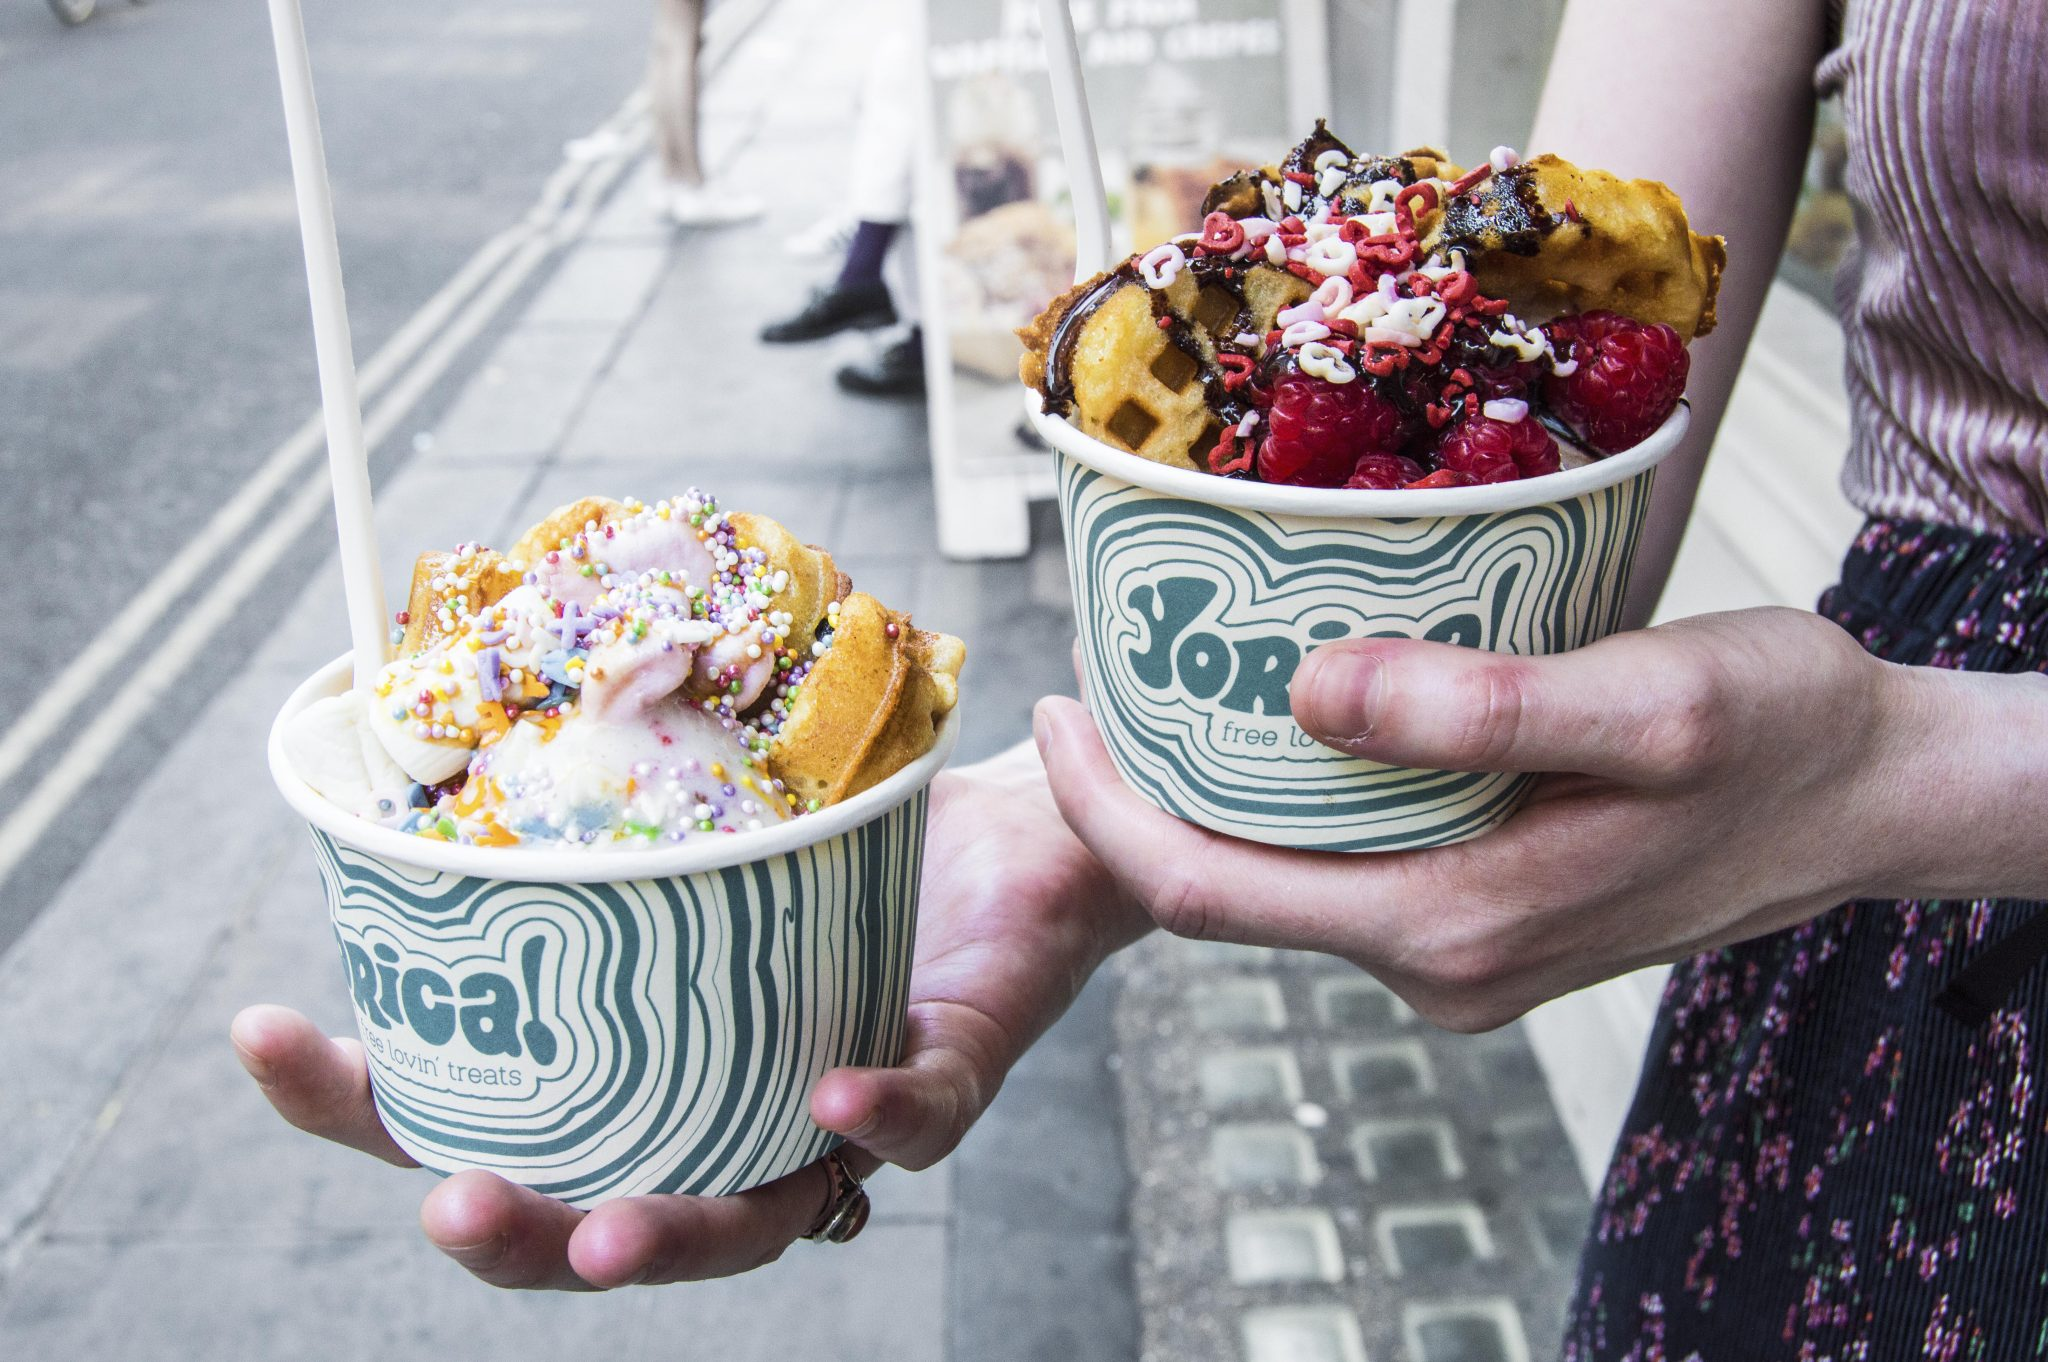 A vegan in London: Ice Cream & Waffles at Yorica